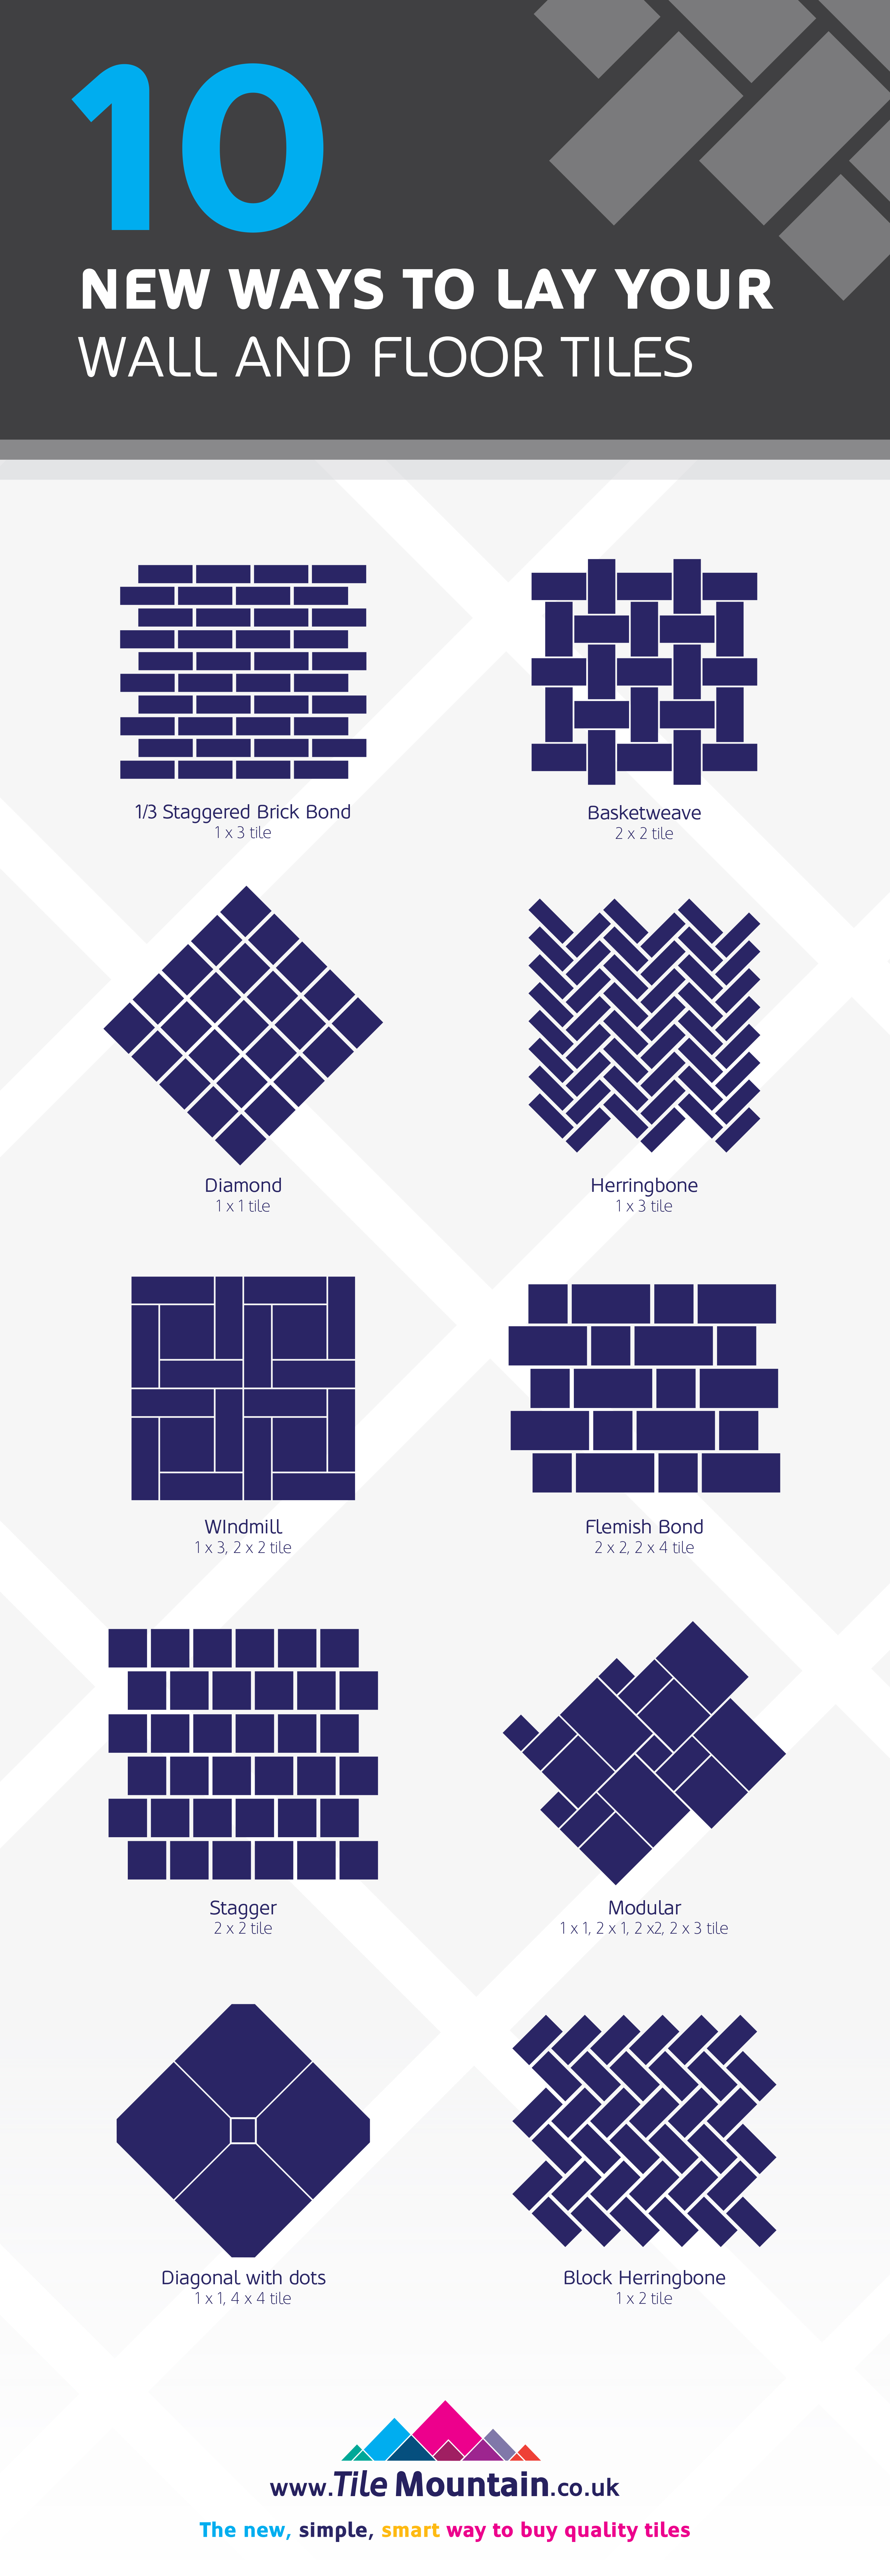 10 new ways to lay wall tiles and floor tiles tile mountain for New wall tiles 2016